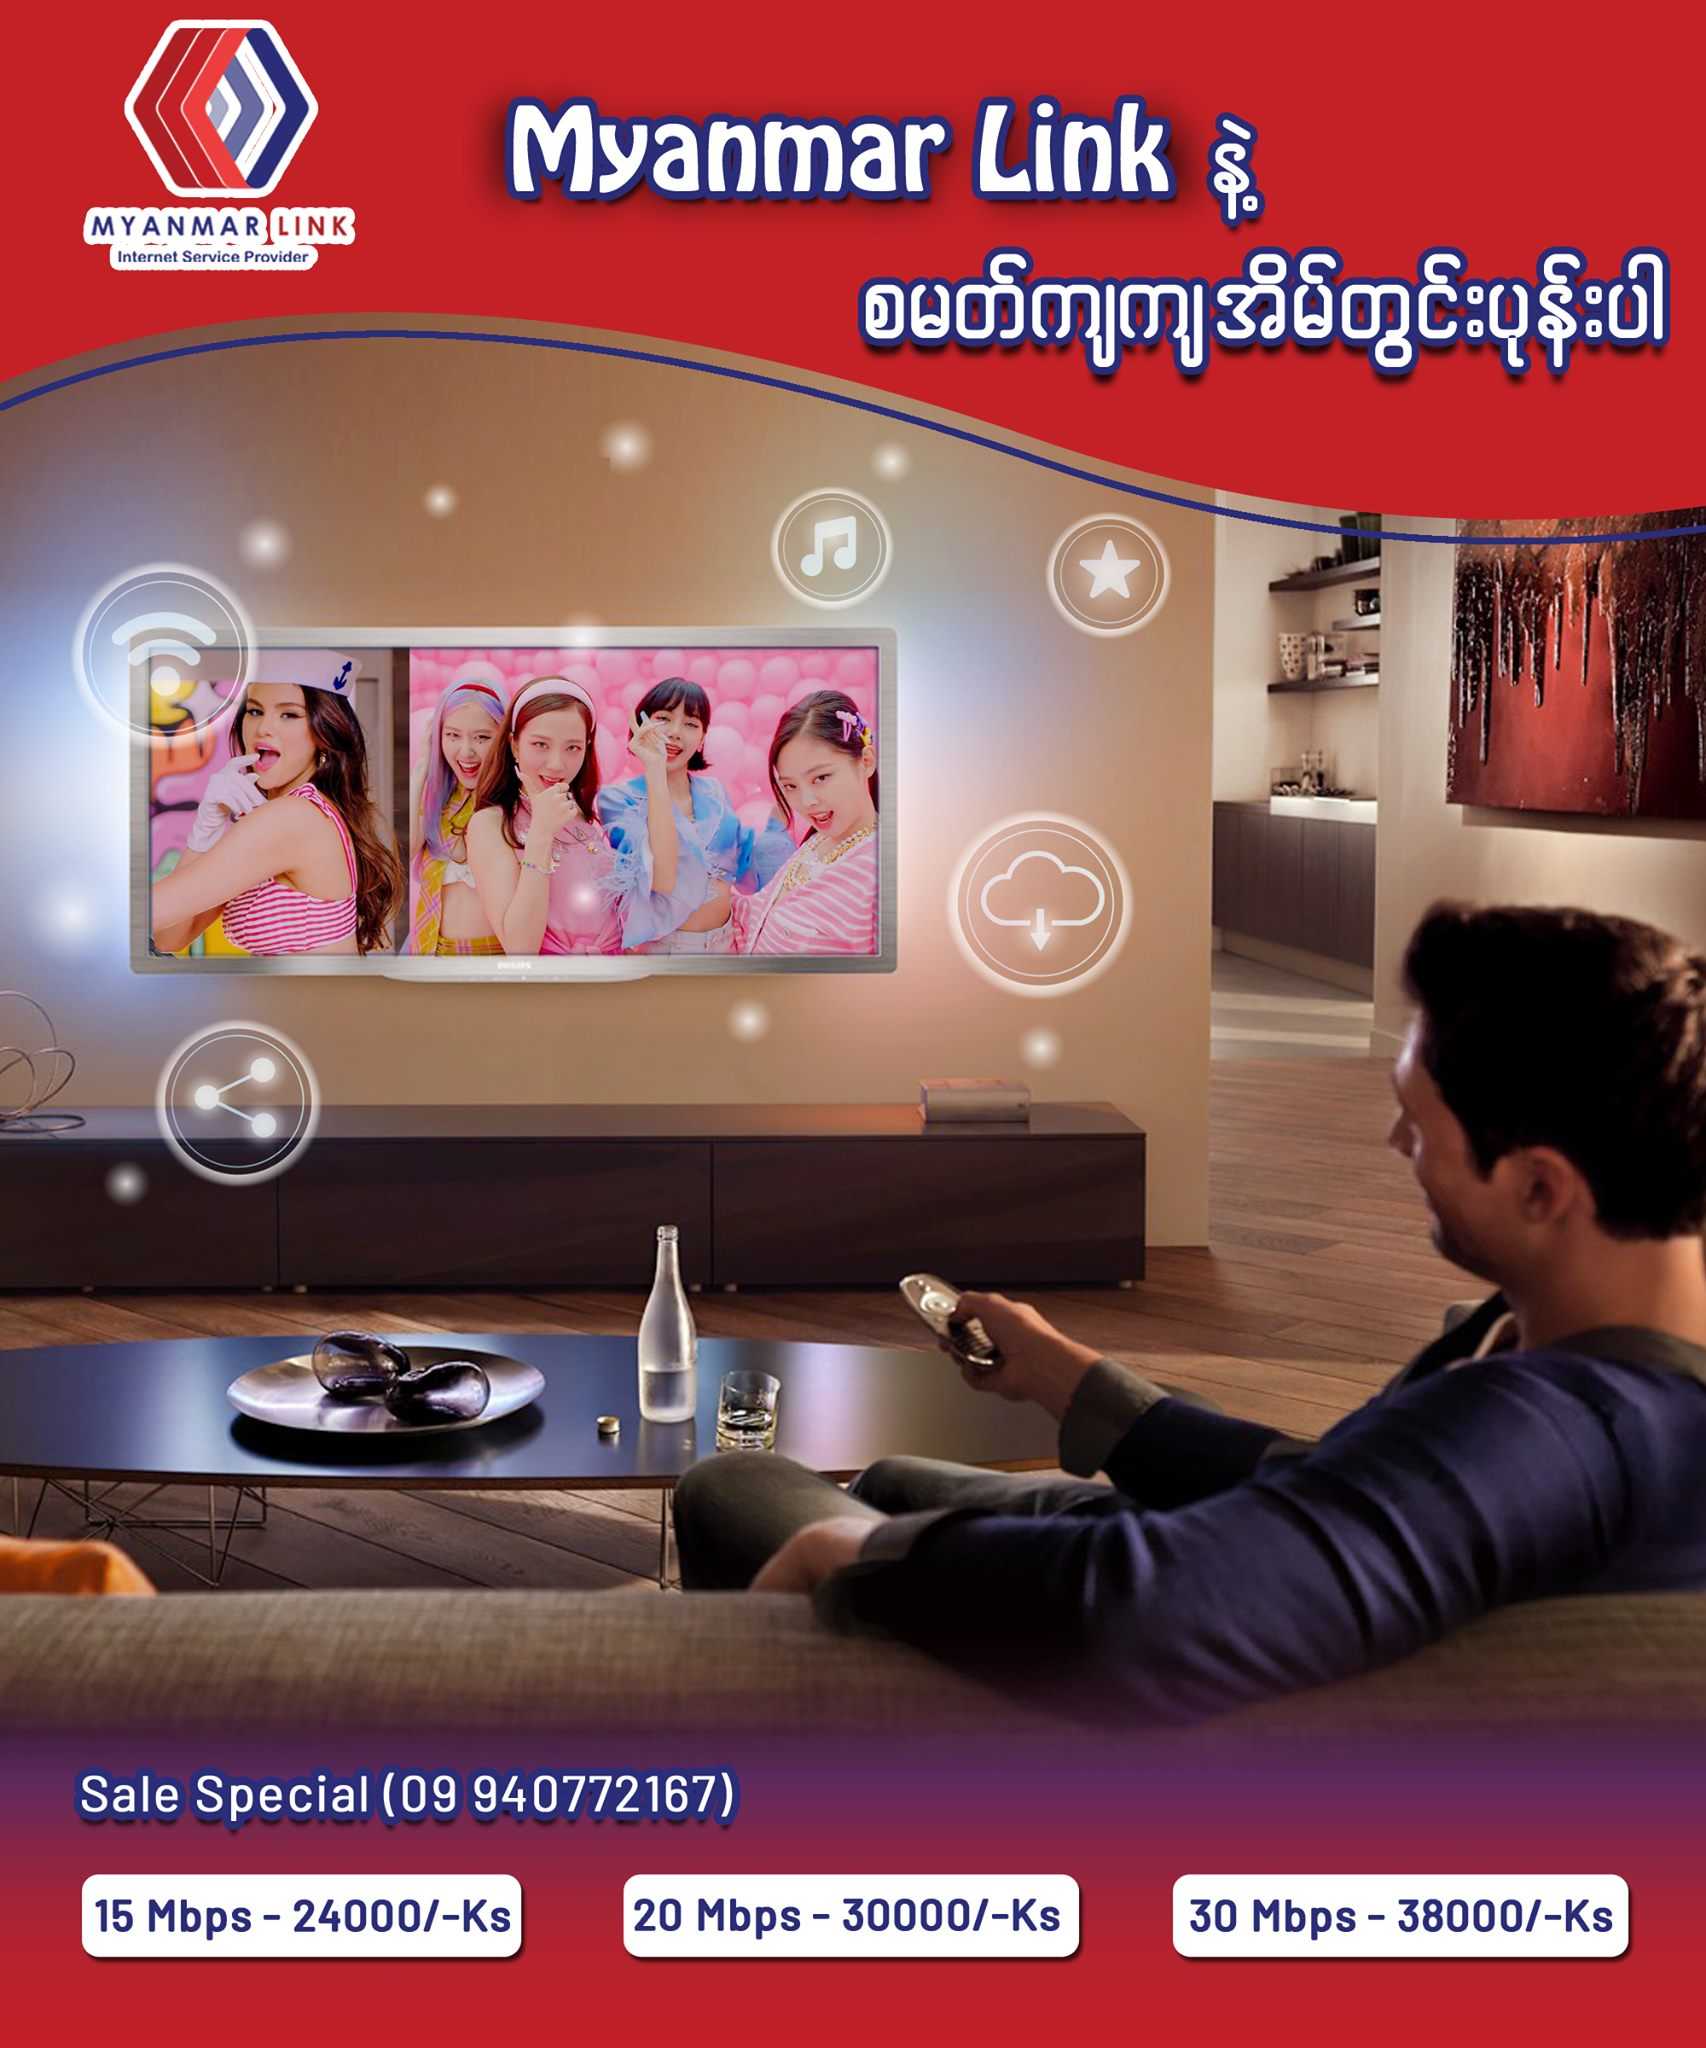 Home Broadband Internet in Myanmar - Sept 2020